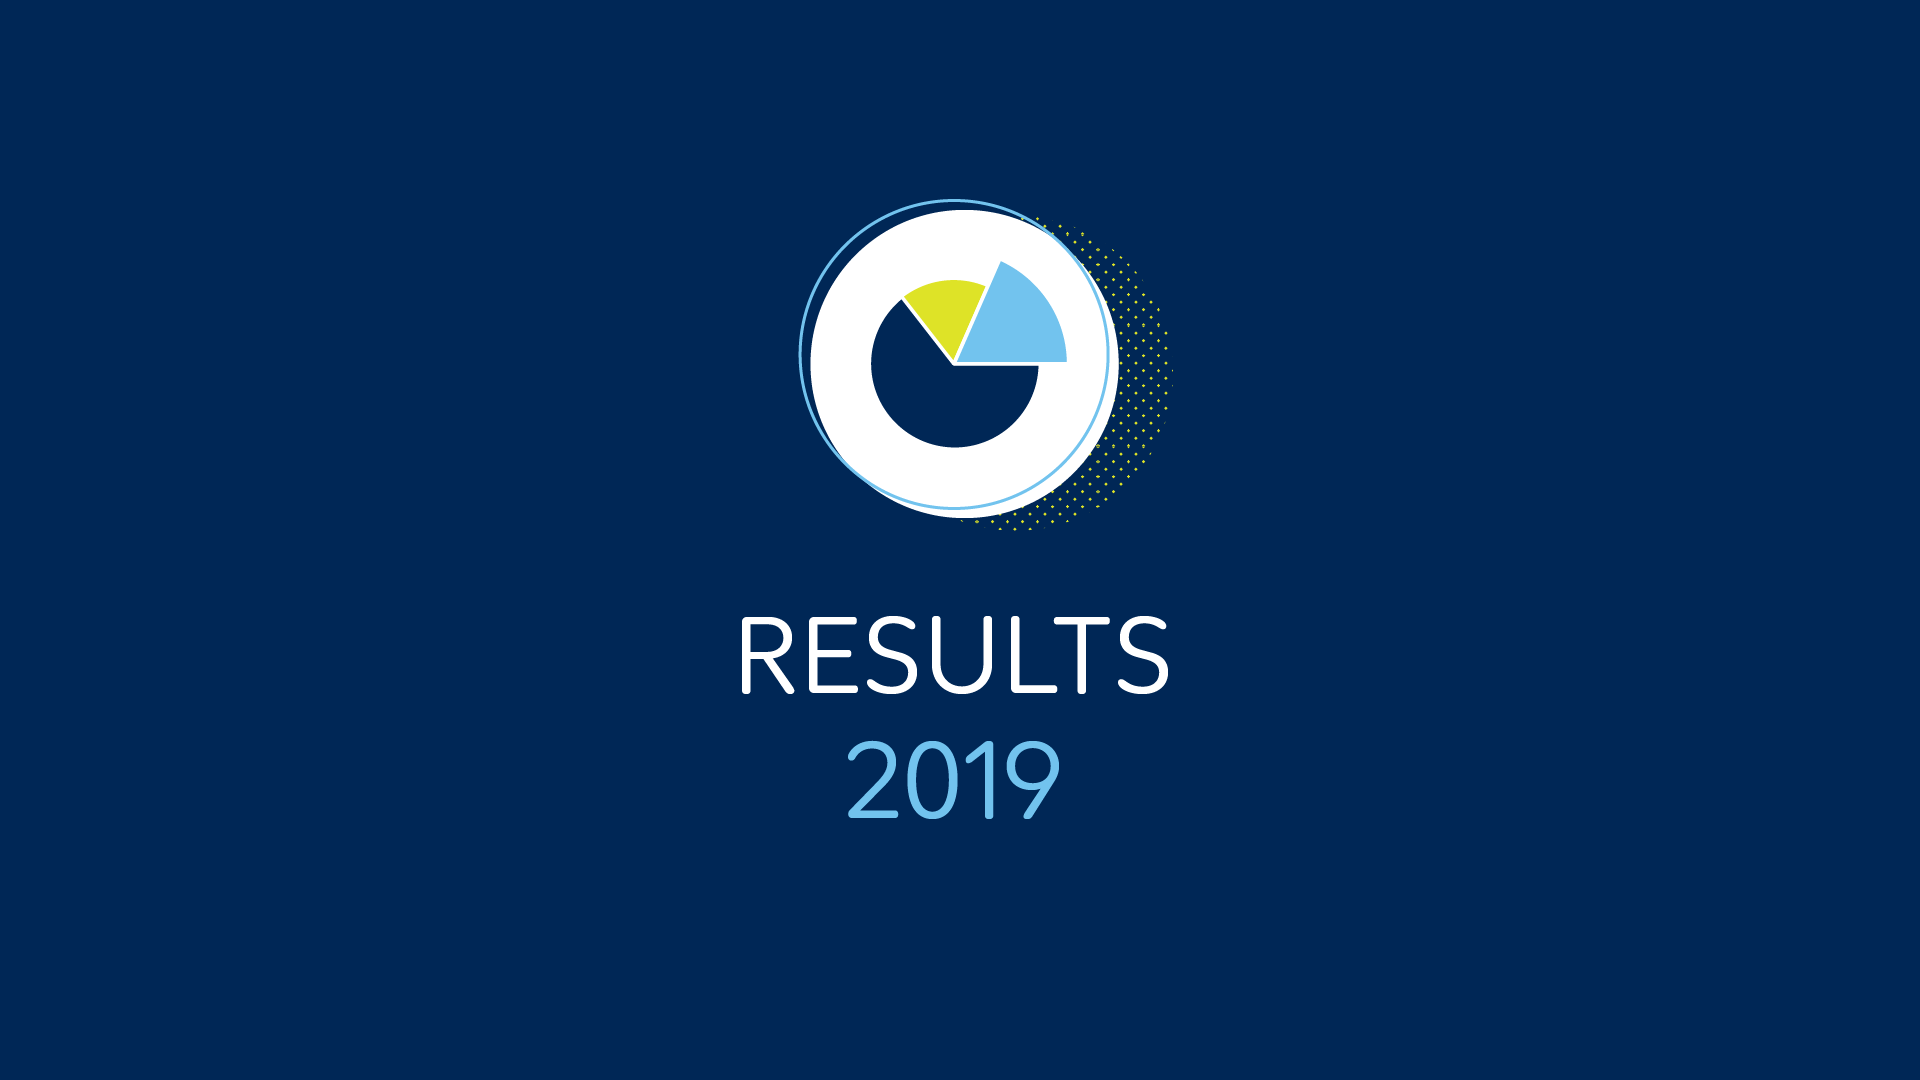 Wintershall Dea Graphics Results 2019